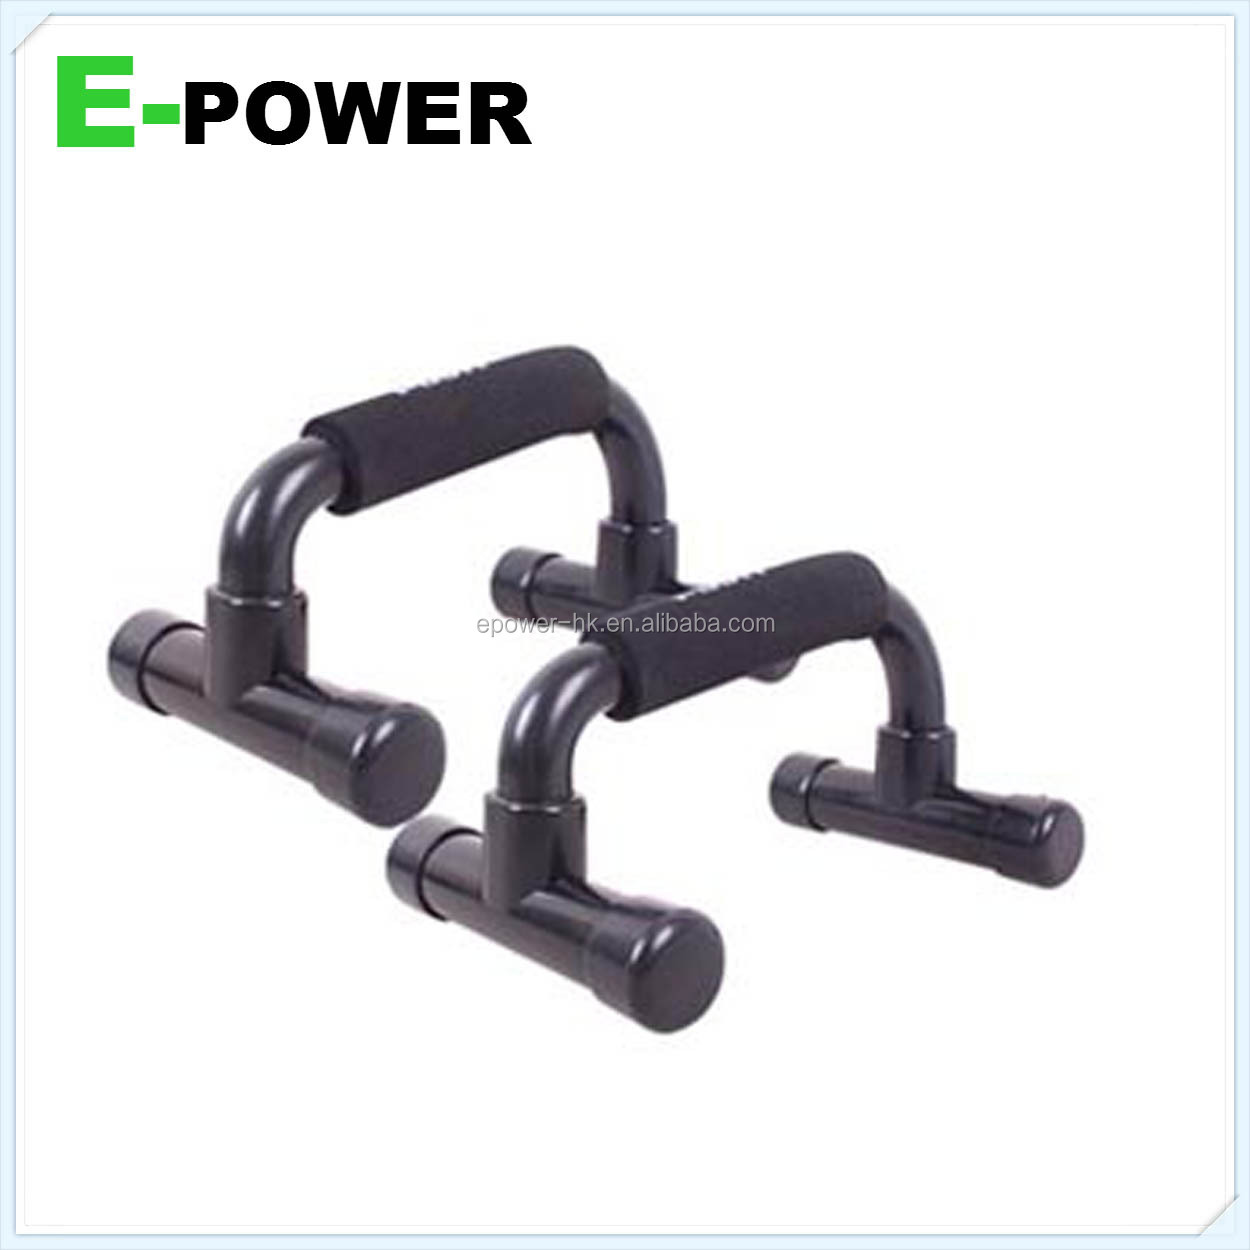 Push Up Bars Fitness New Exercise Home Workout Home Handles Gym Perfect AM